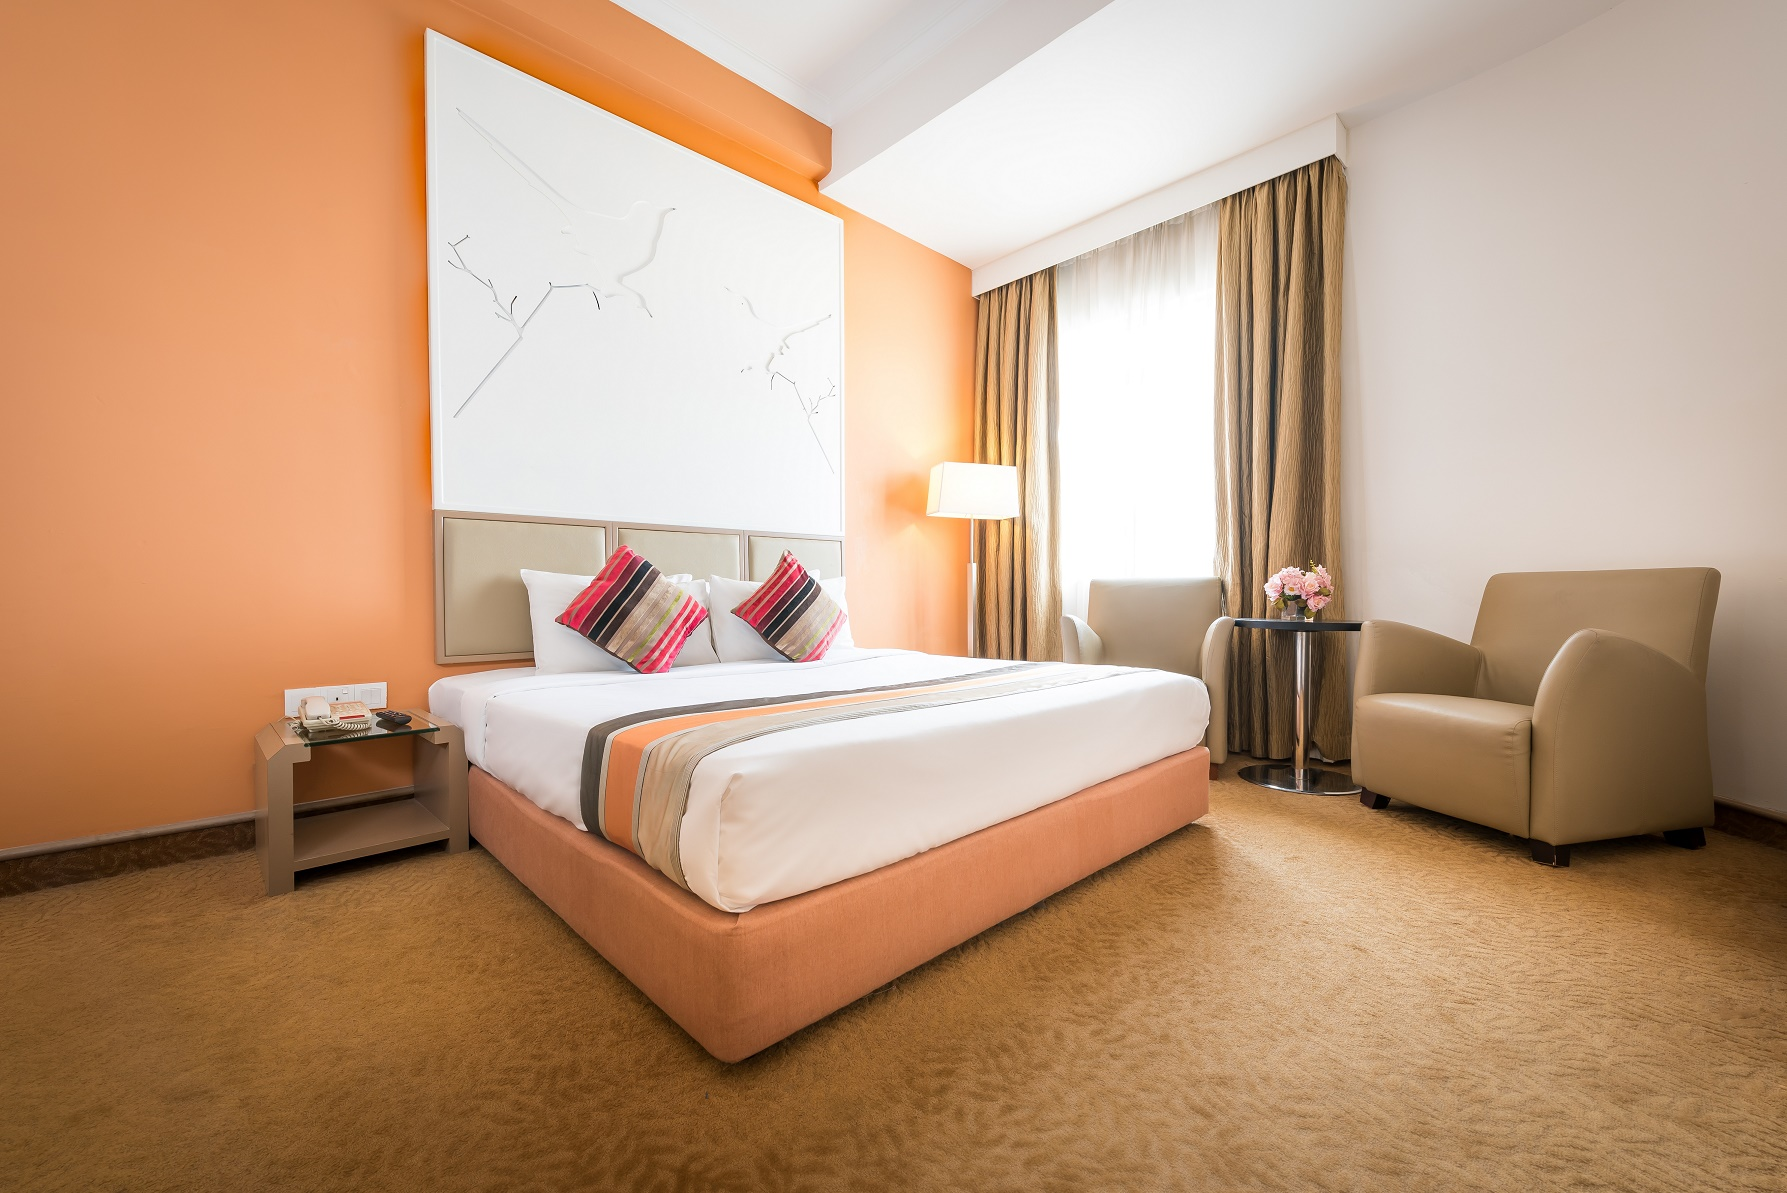 Hotel Sentral Pudu Deluxe Room